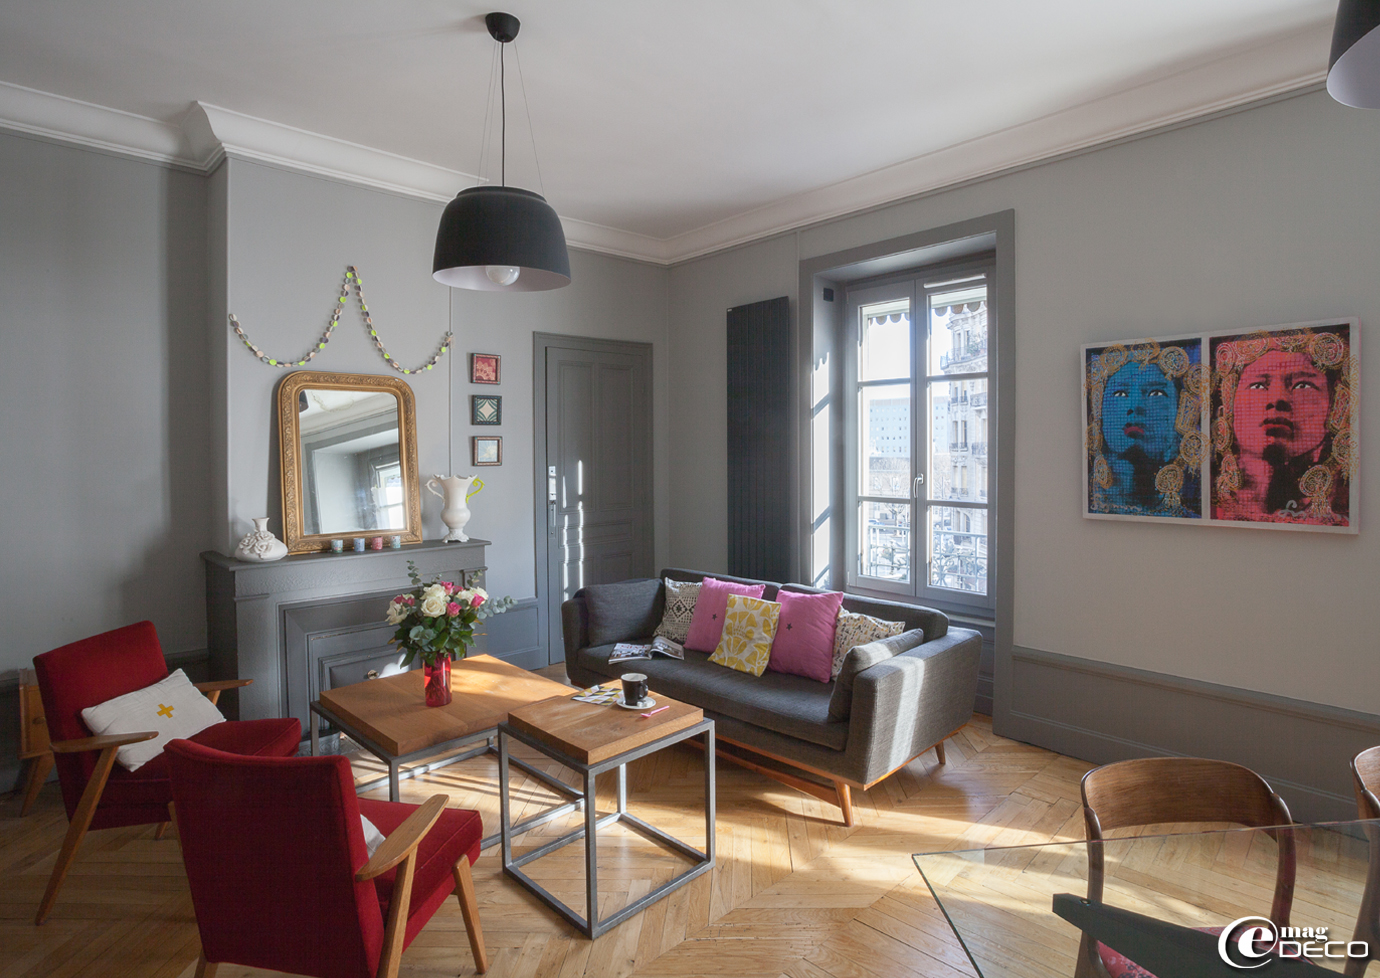 Un appartement trendy lyon e magdeco magazine de - Interieur eclectique appartement sobrado studio ...